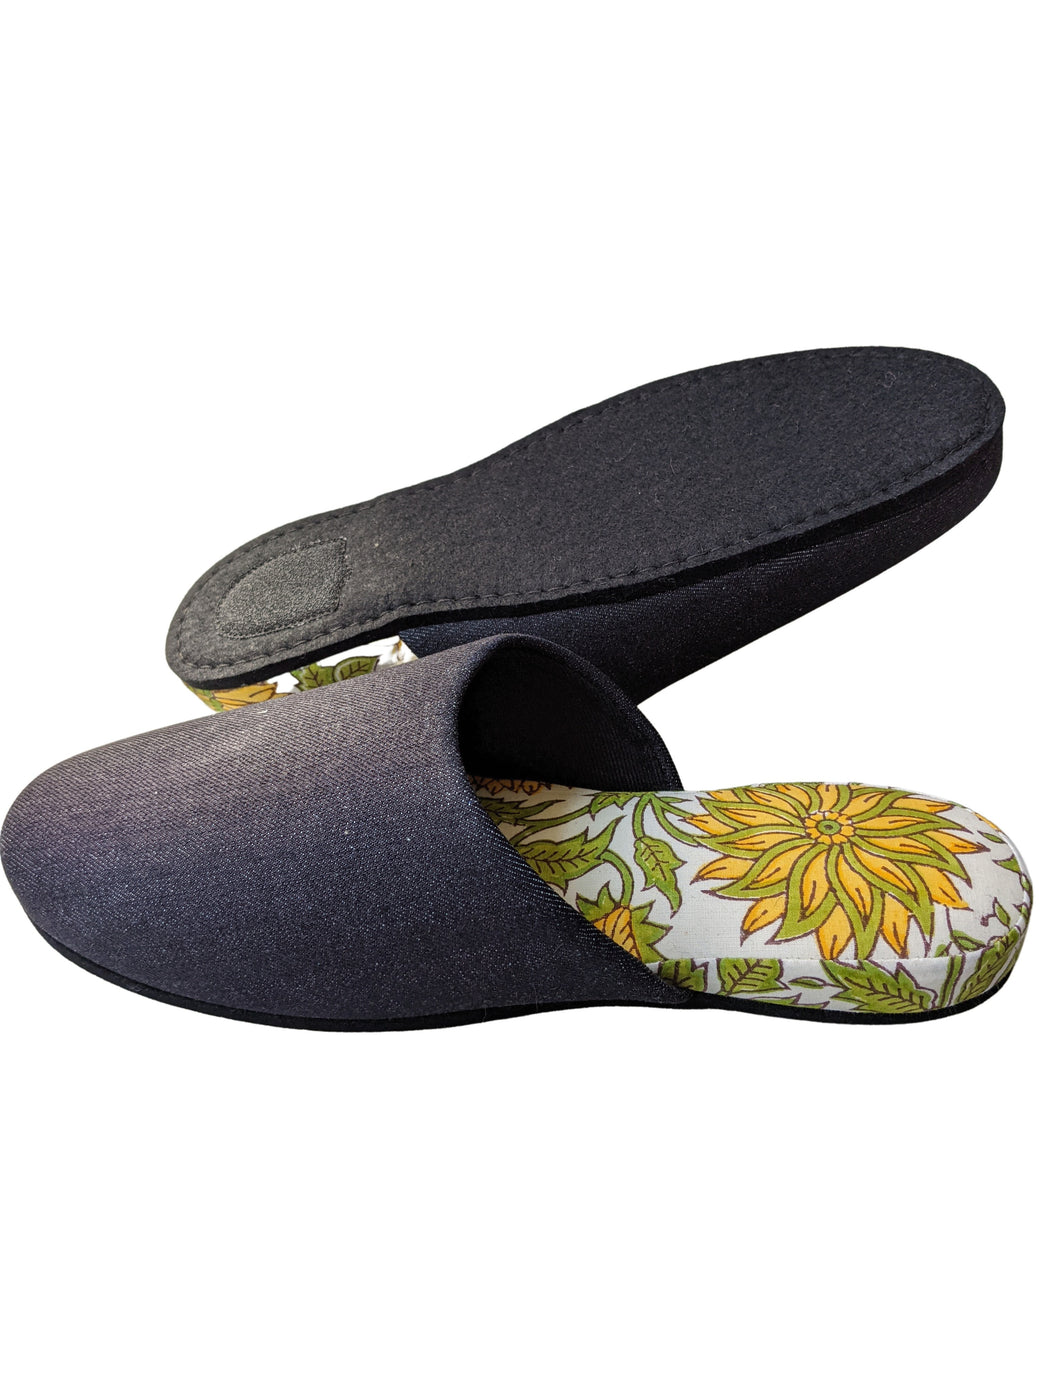 XL : Denim and Flowers Mix Slippers [Black wool felt sole] (2021 Spring / Block Printing Flowers) XL #1 #2